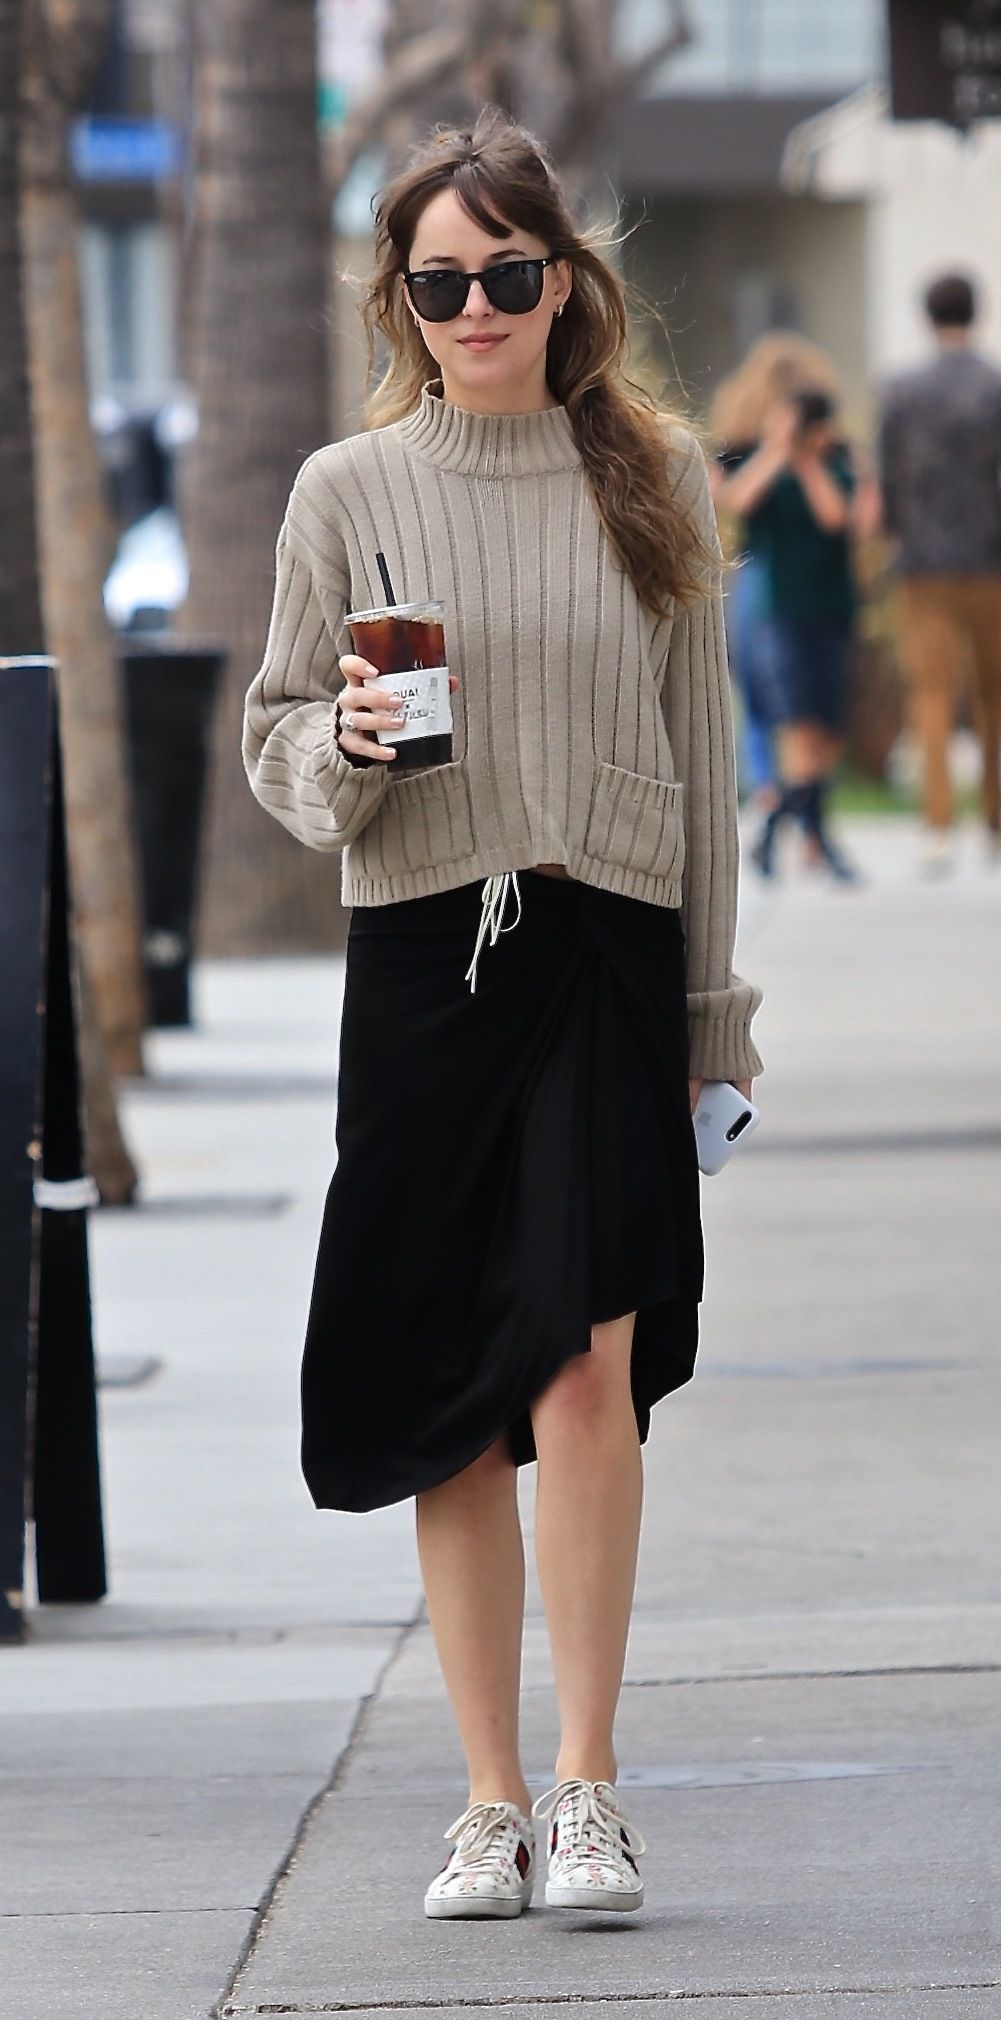 46fbe83bd97 The cutest women on earth.love her outfit! 😍😍😍 Dakota Johnson in